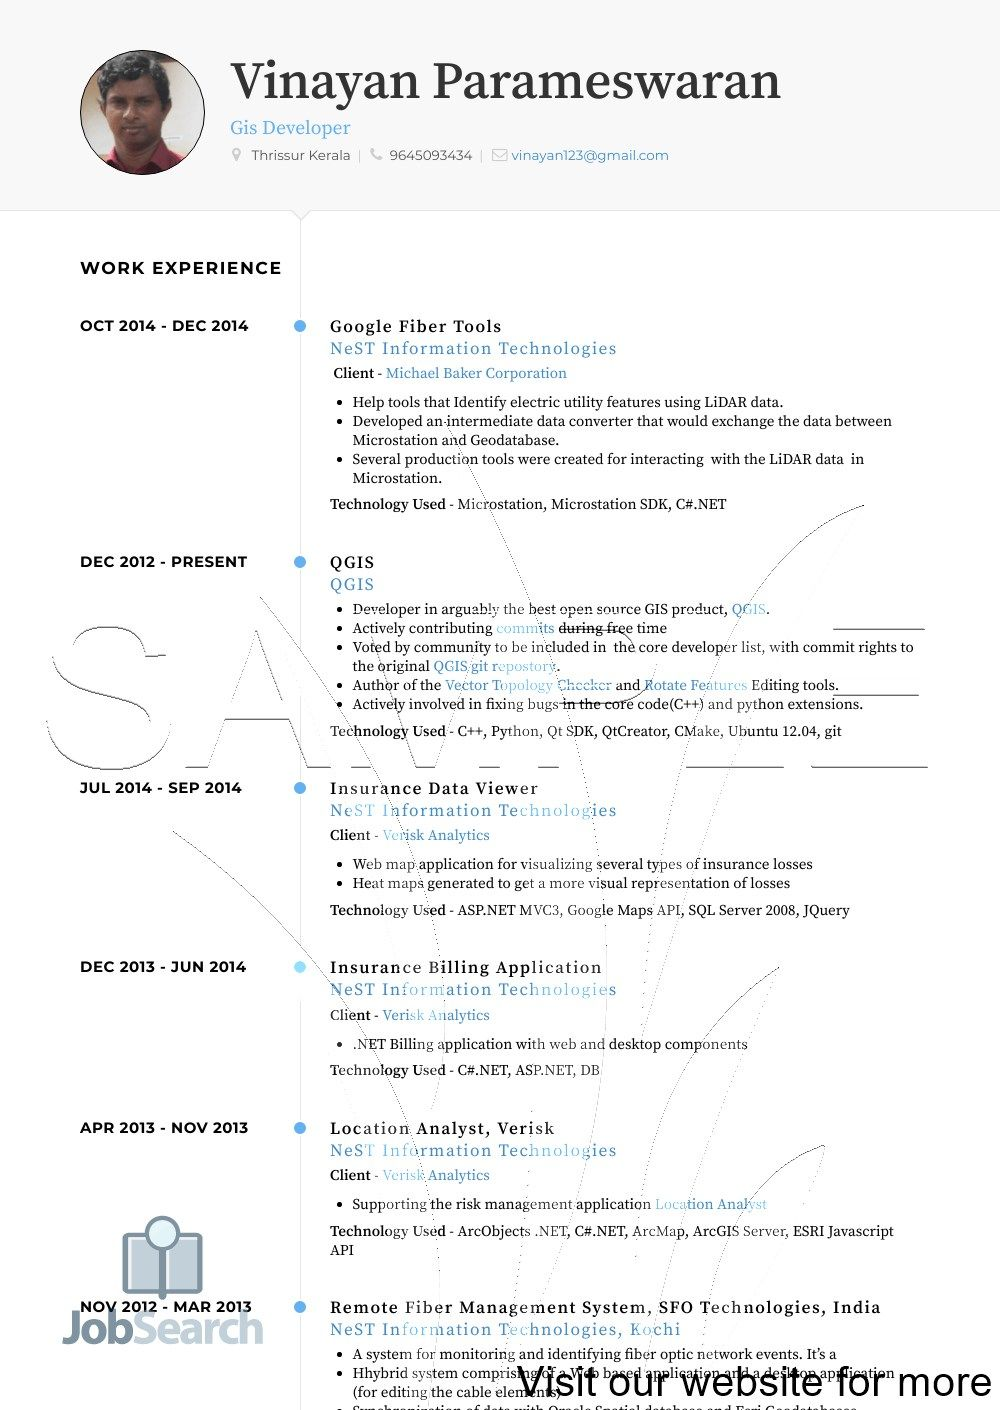 Google Resume Format For Freshers In 2020 Resume Design Creative